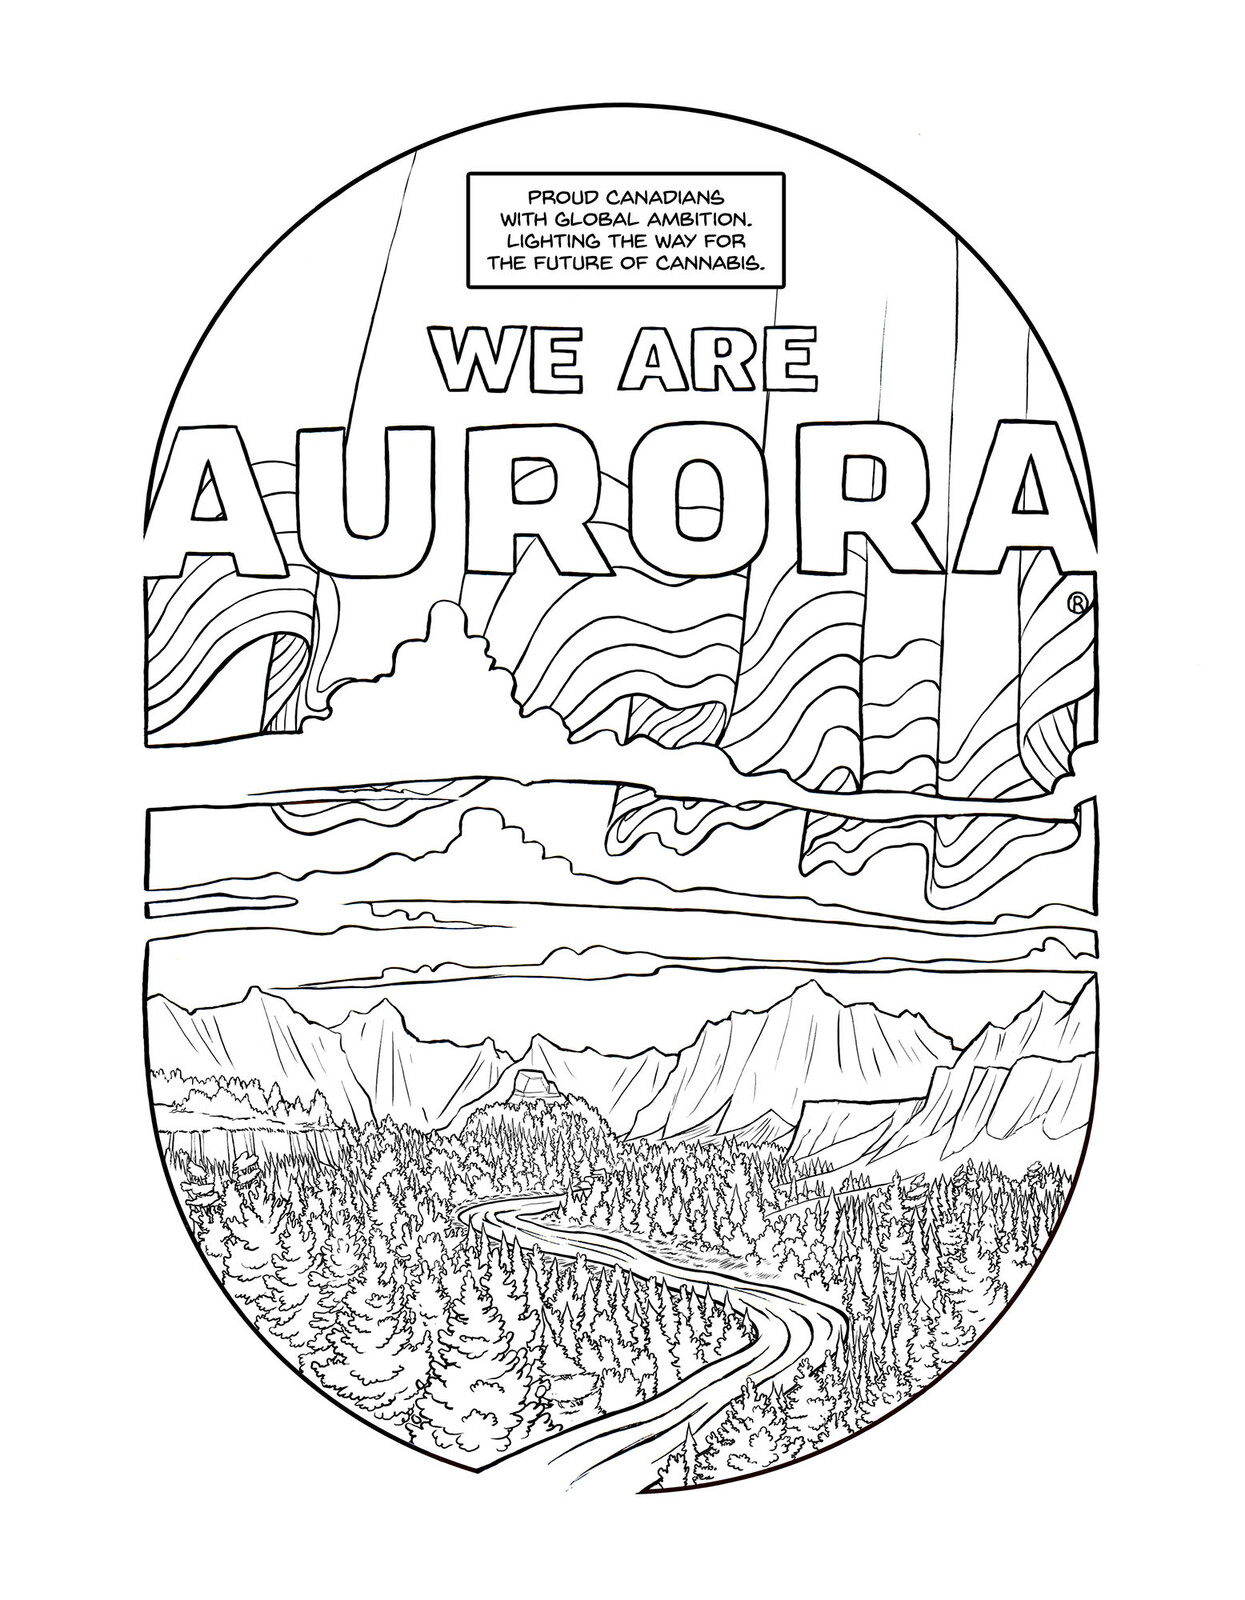 Pages from an in house coloring book commissioned by Aurora Cannabis, a medical and recreational legal grower in Canada.